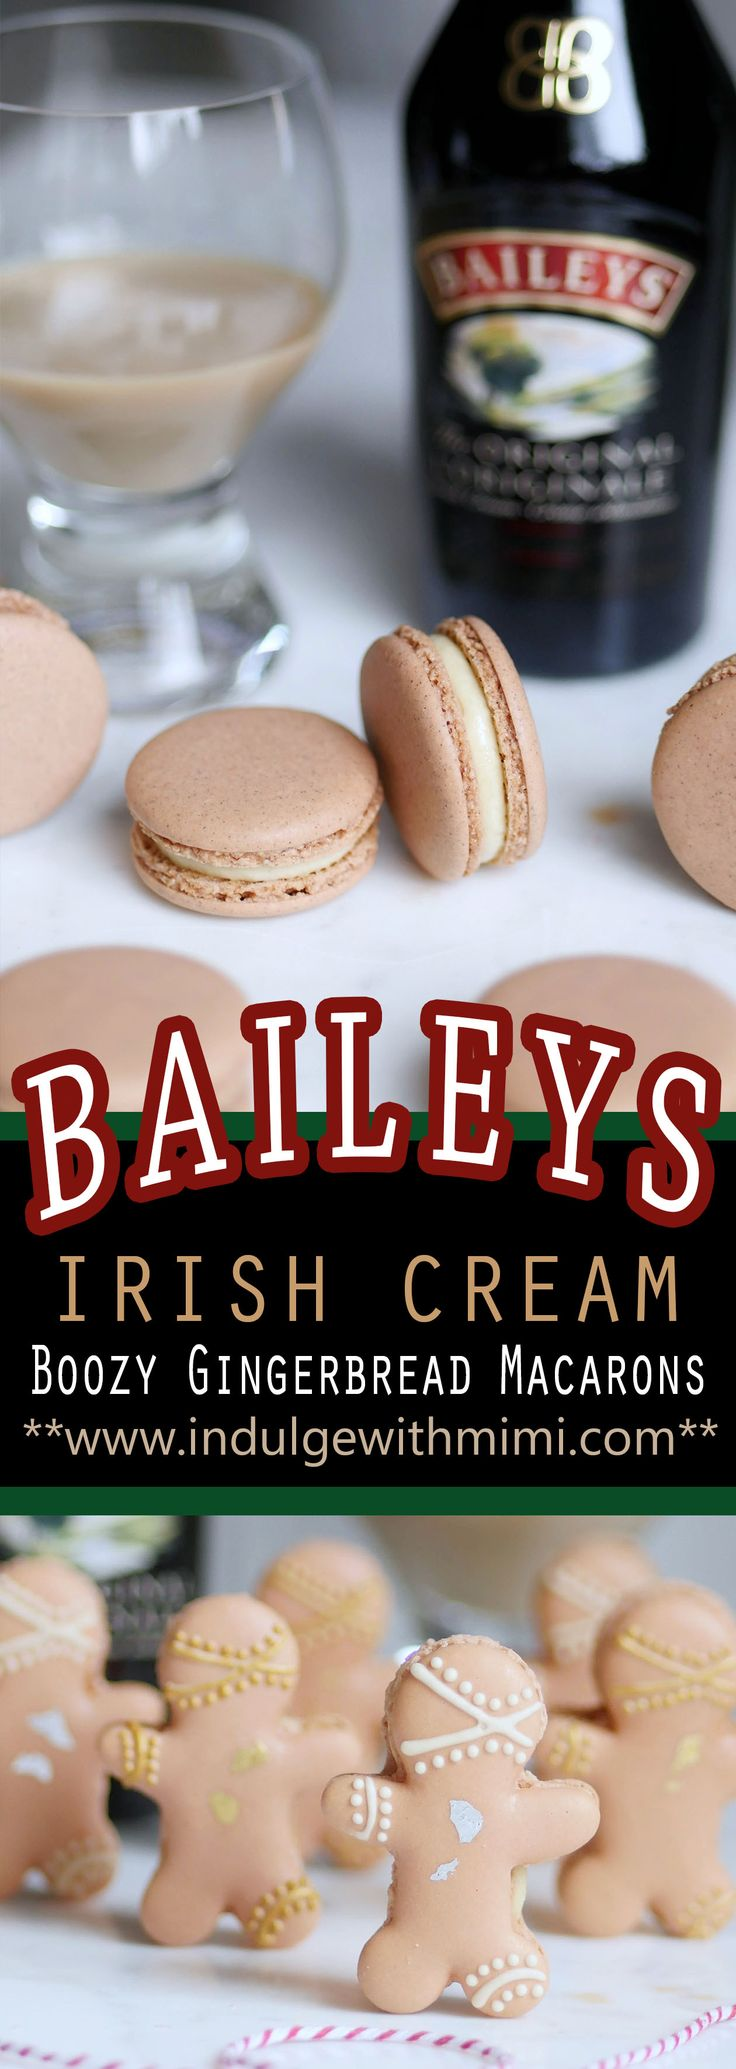 Boozy Gingerbread Macarons filled with Baileys Irish Cream. Includes Mimi's Best Macaron Recipe.